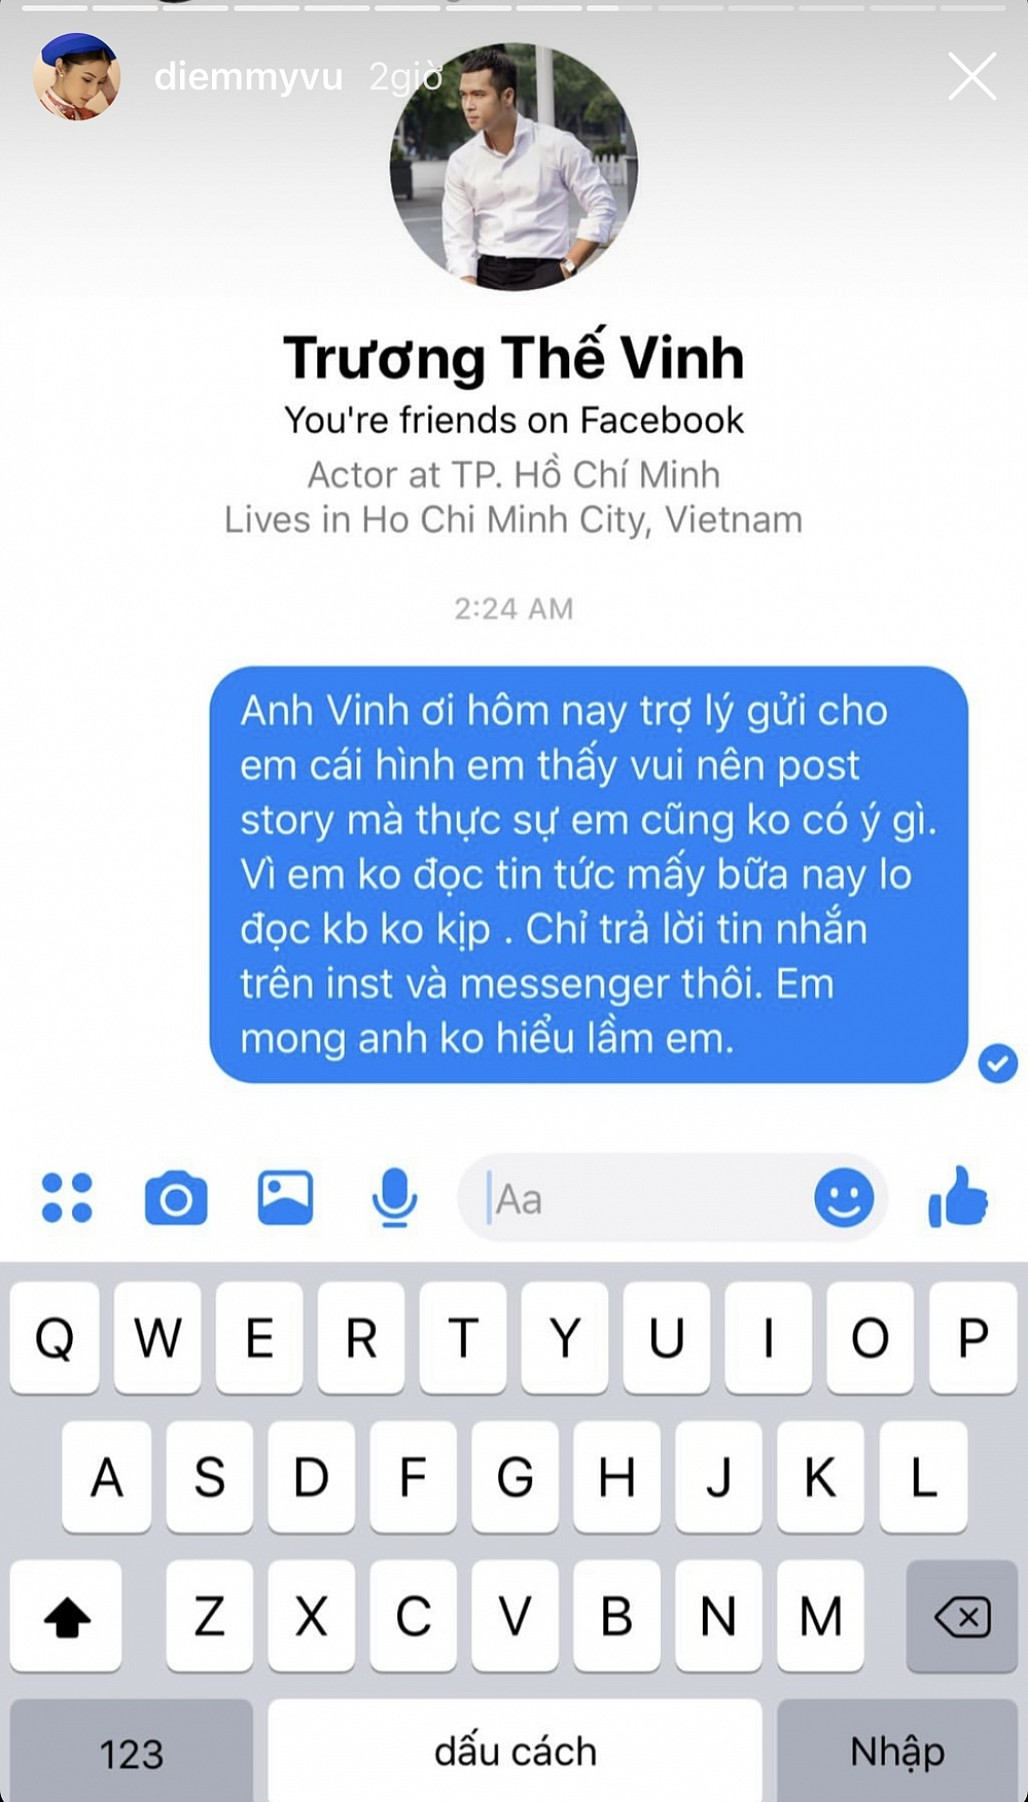 ca si truong the vinh 7